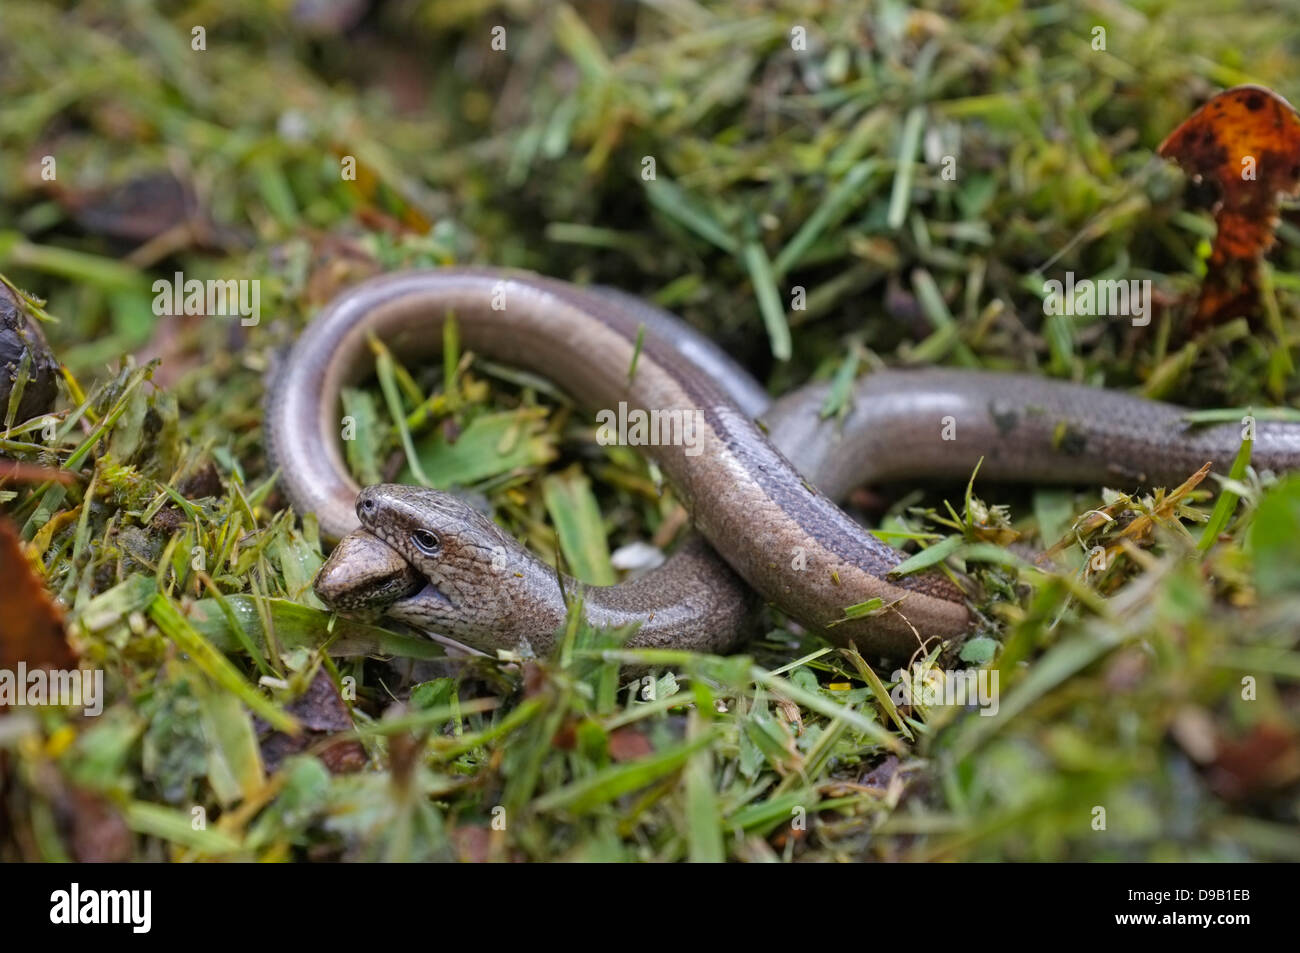 Slow worms mating, male holding female's head - Stock Image